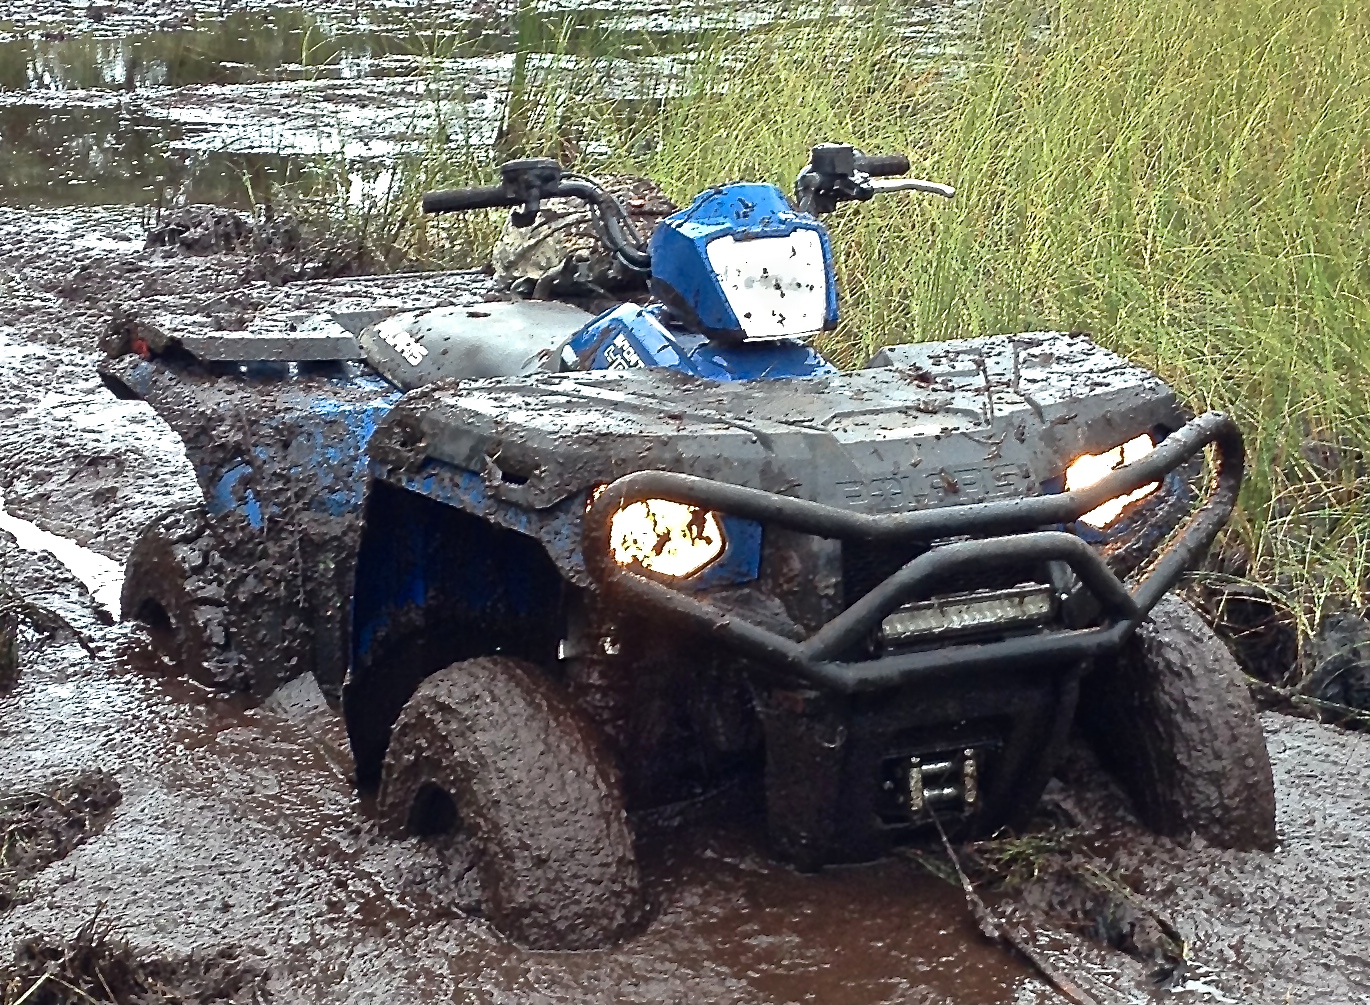 D Refuses Start Cimg as well D Hard Shift Sportsman Wheeler Trany Shifter further D Scrambler Project Pre together with D Polaris Sportsman Winch Install Img likewise D Sportsman Electrical Issue Img. on polaris sportsman 500